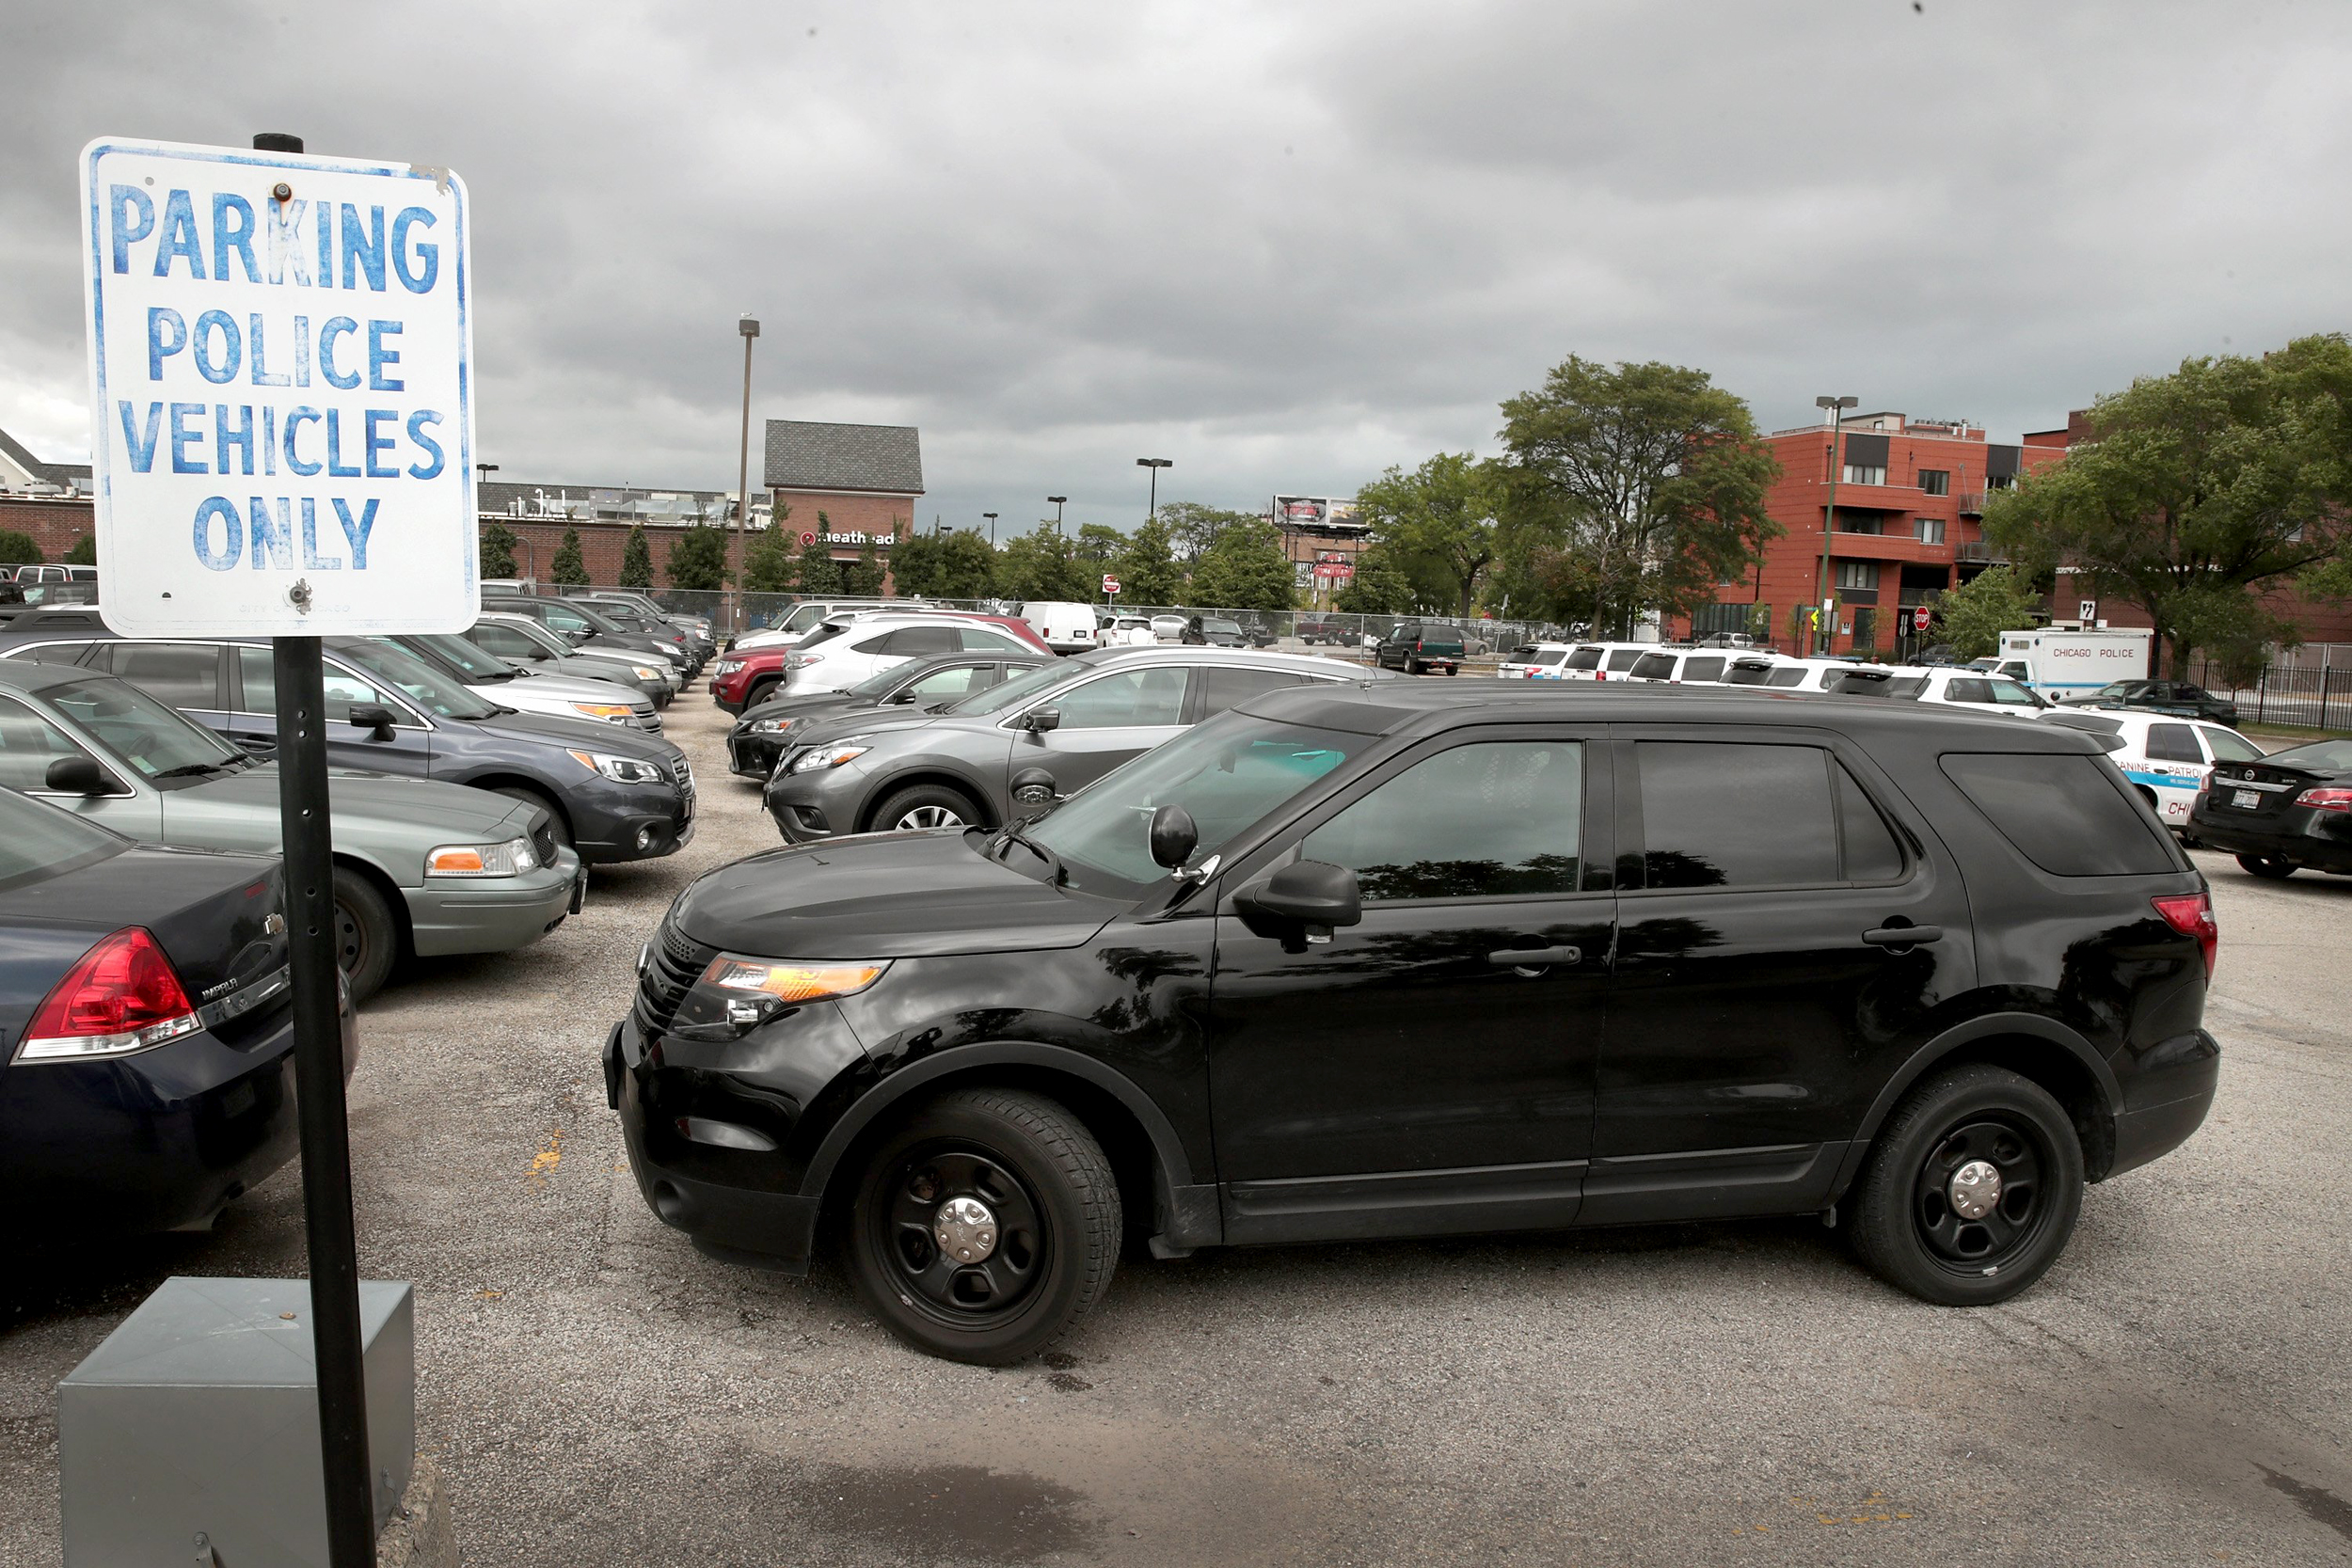 Ford rushes to repair police suvs 15 minute news for Ford motor company news headlines